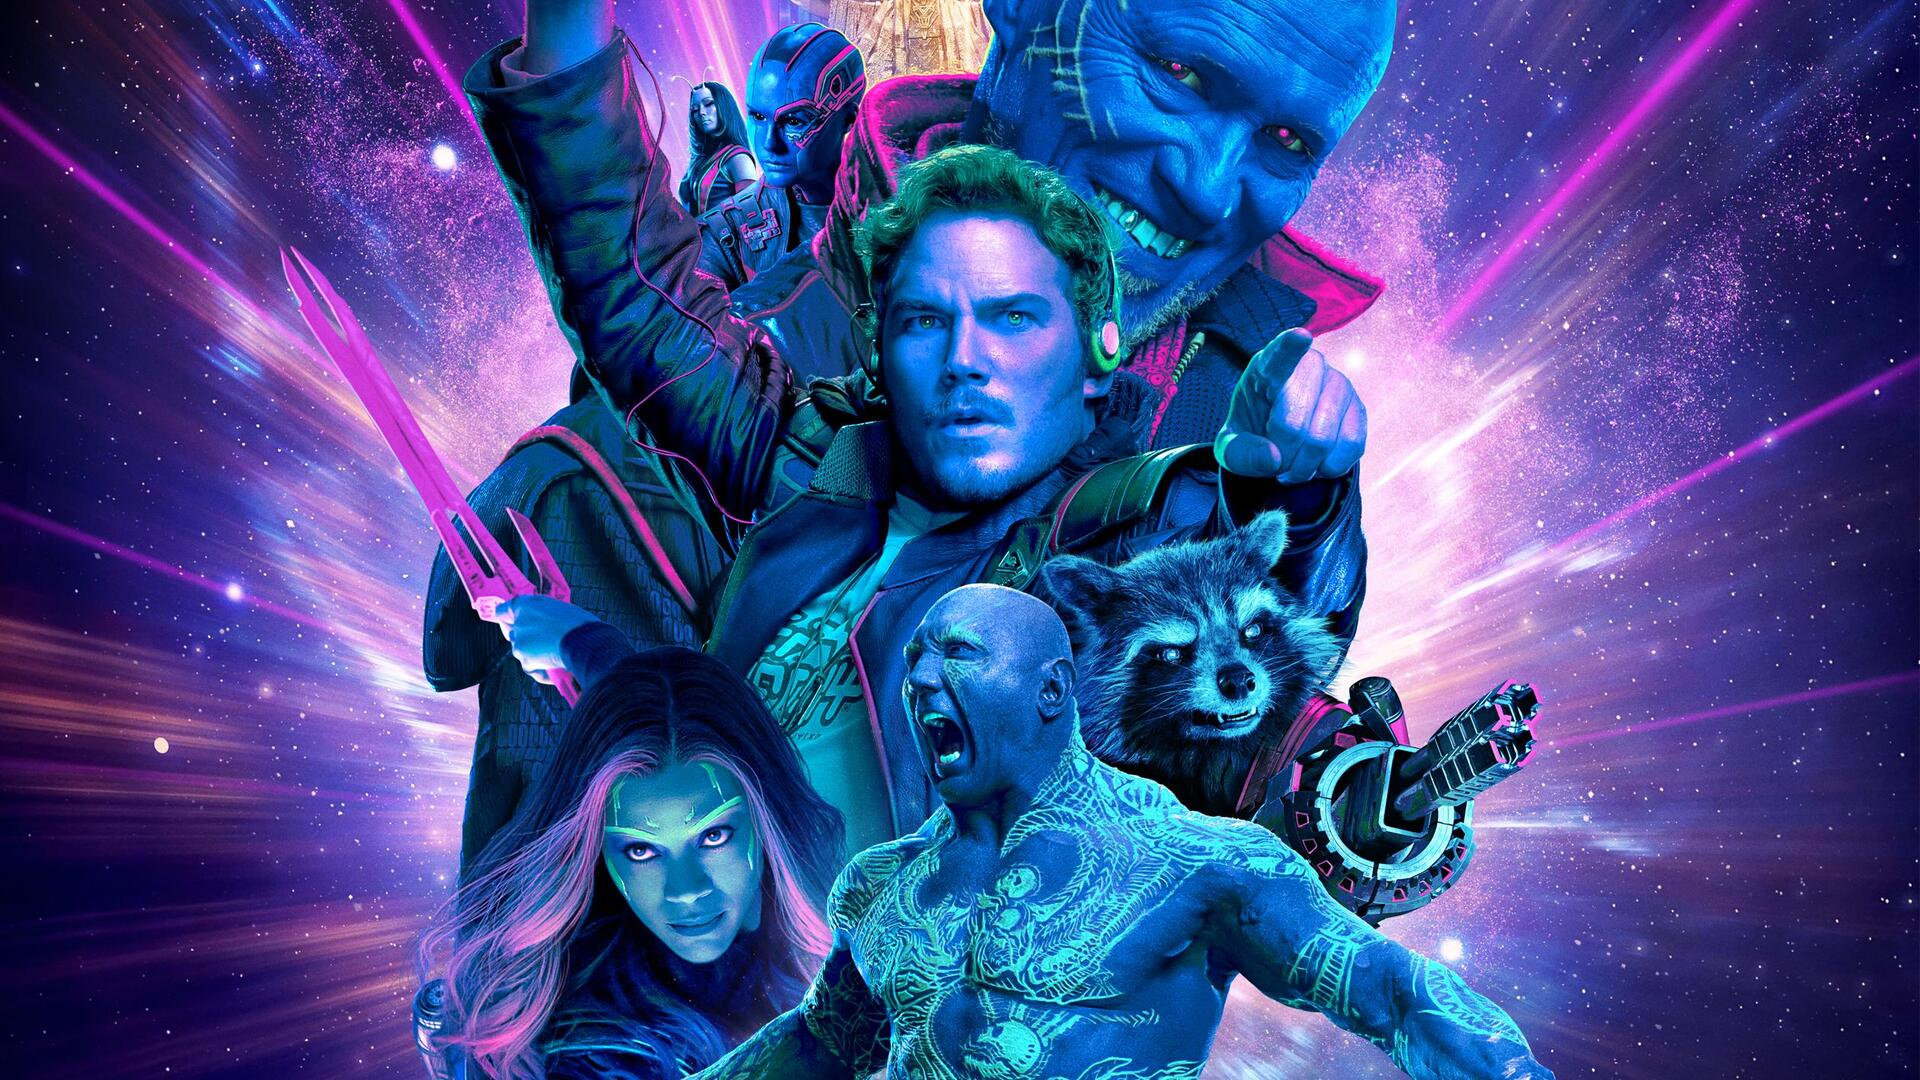 Guardians Of The Galaxy 2 Hd